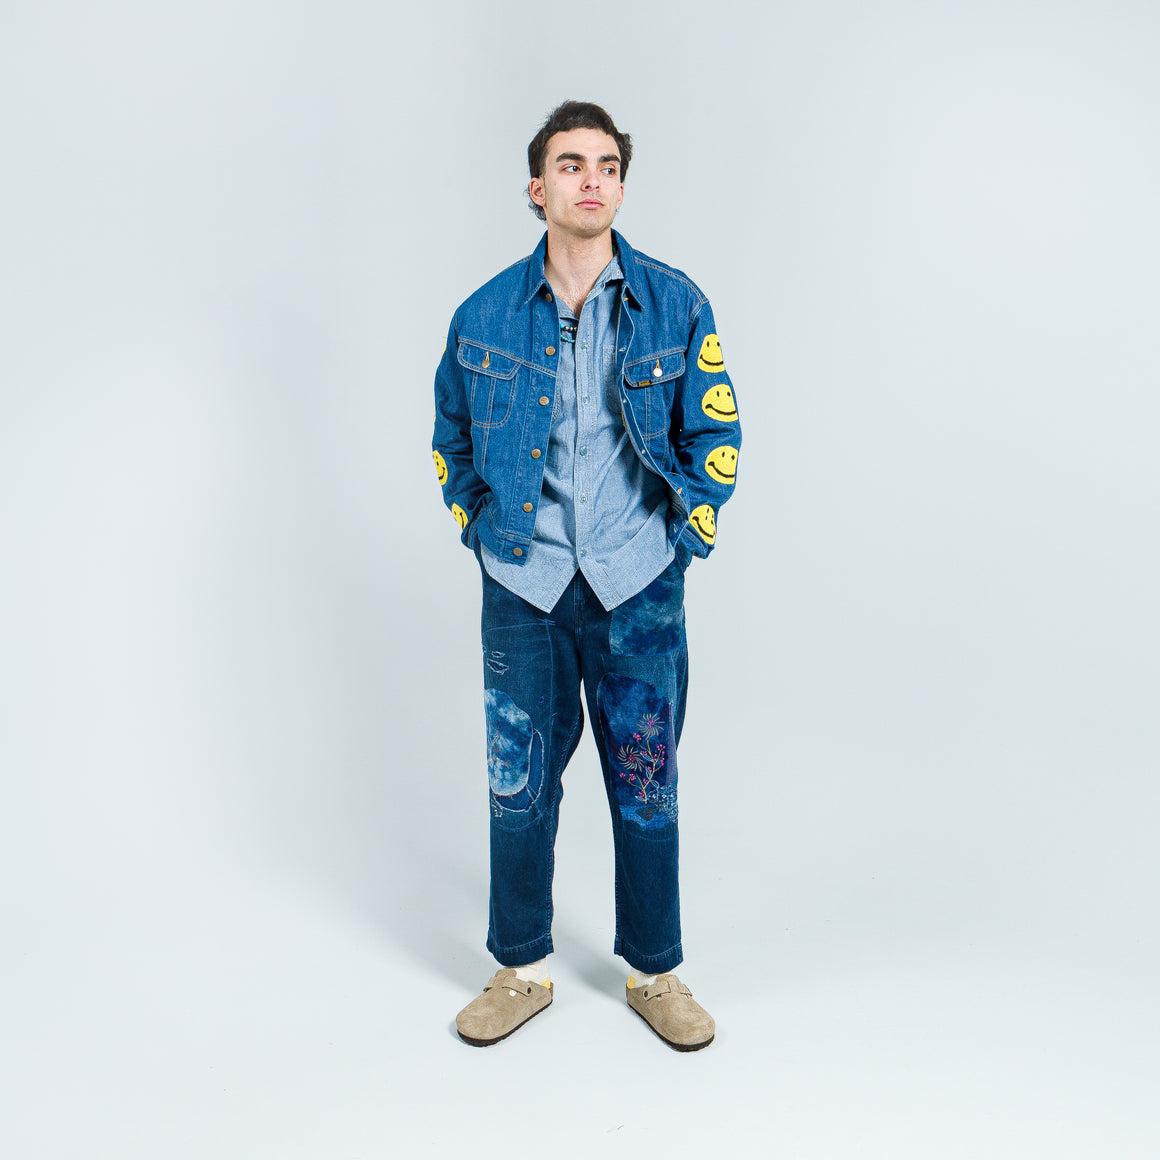 Kapital - 11.5oz Denim Westerner (SMILE) - Indigo - Up There